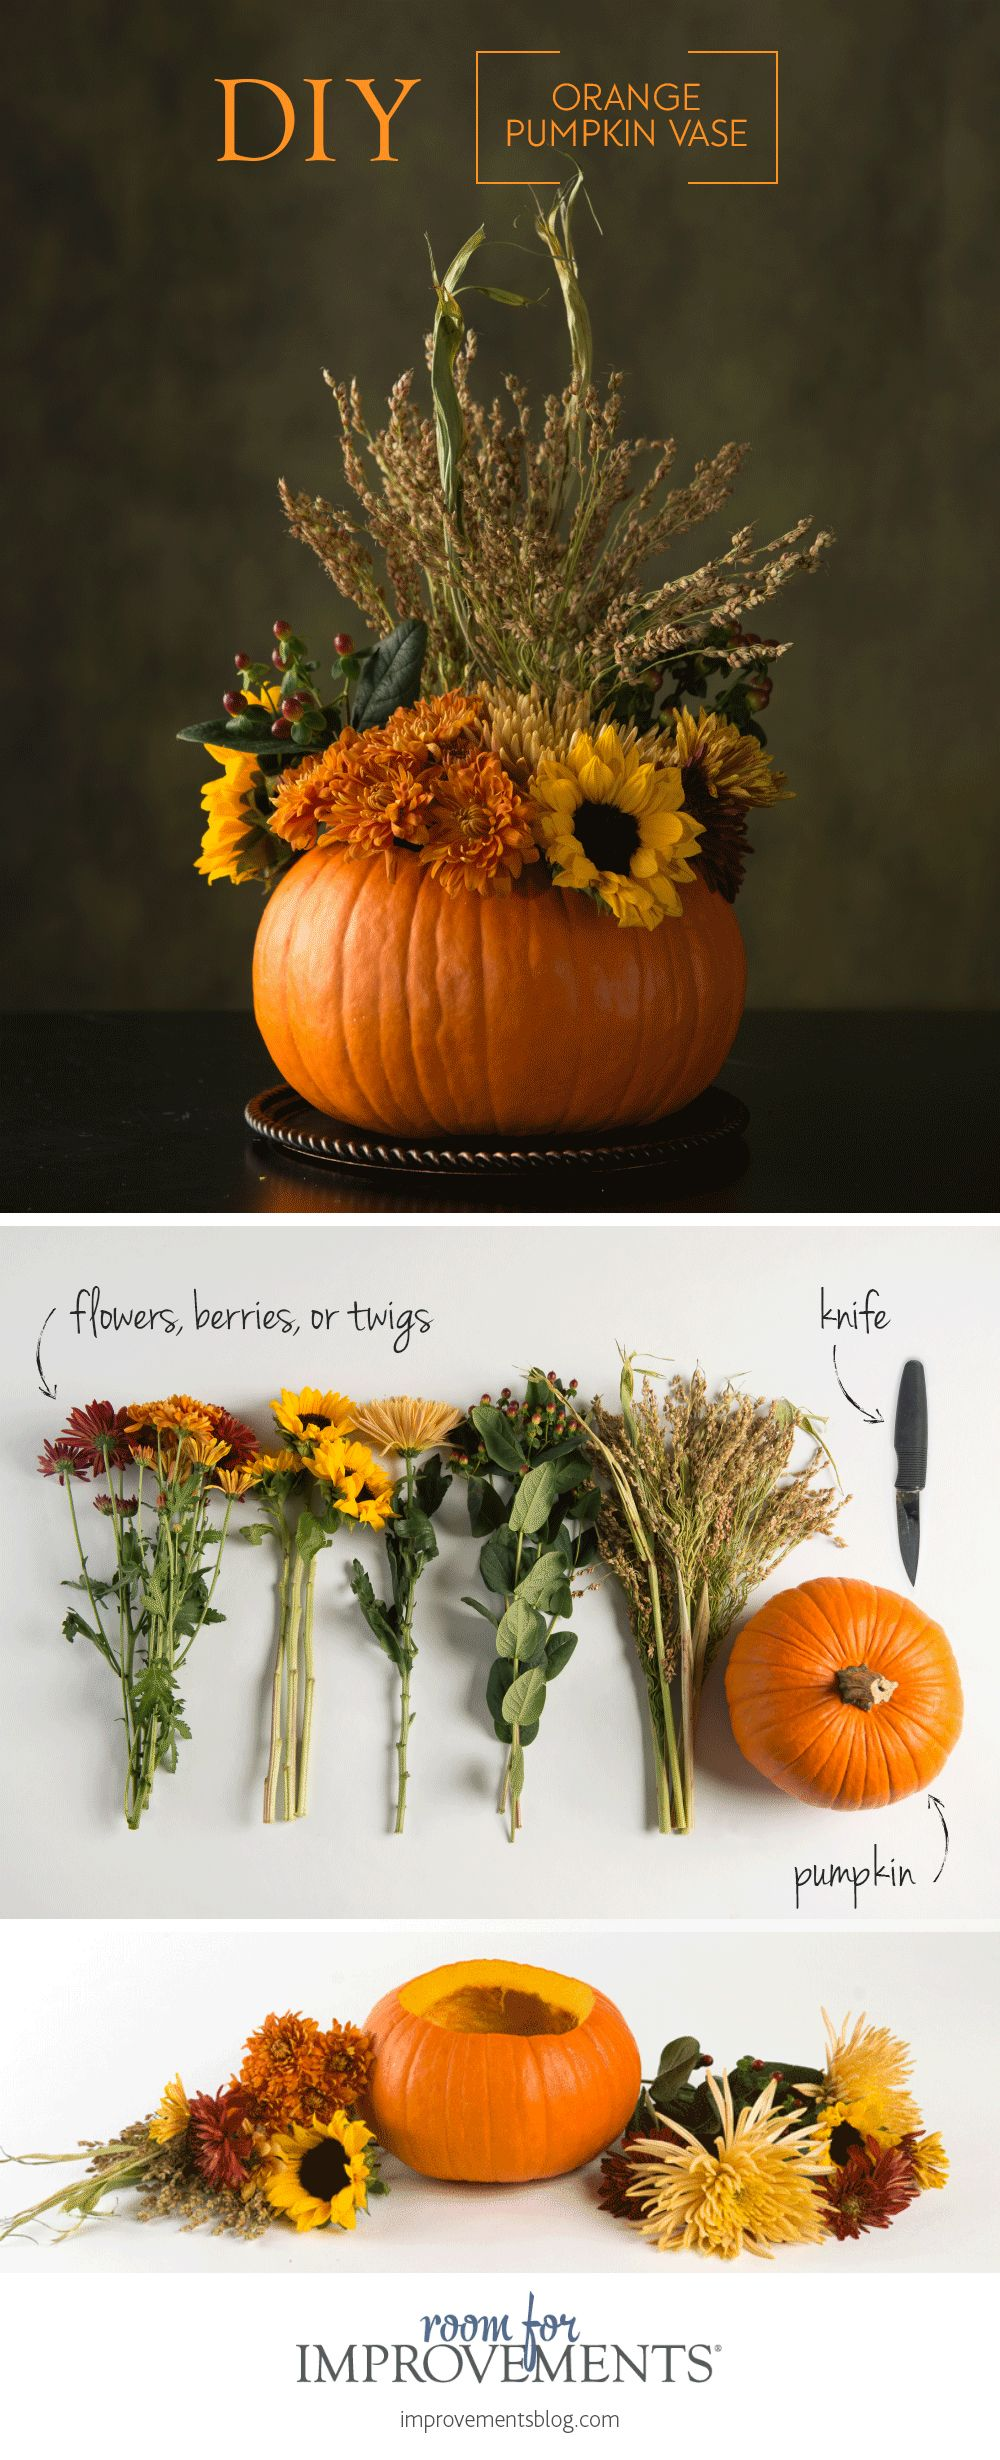 Here you'll find a unique DIY Thanksgiving centerpiece